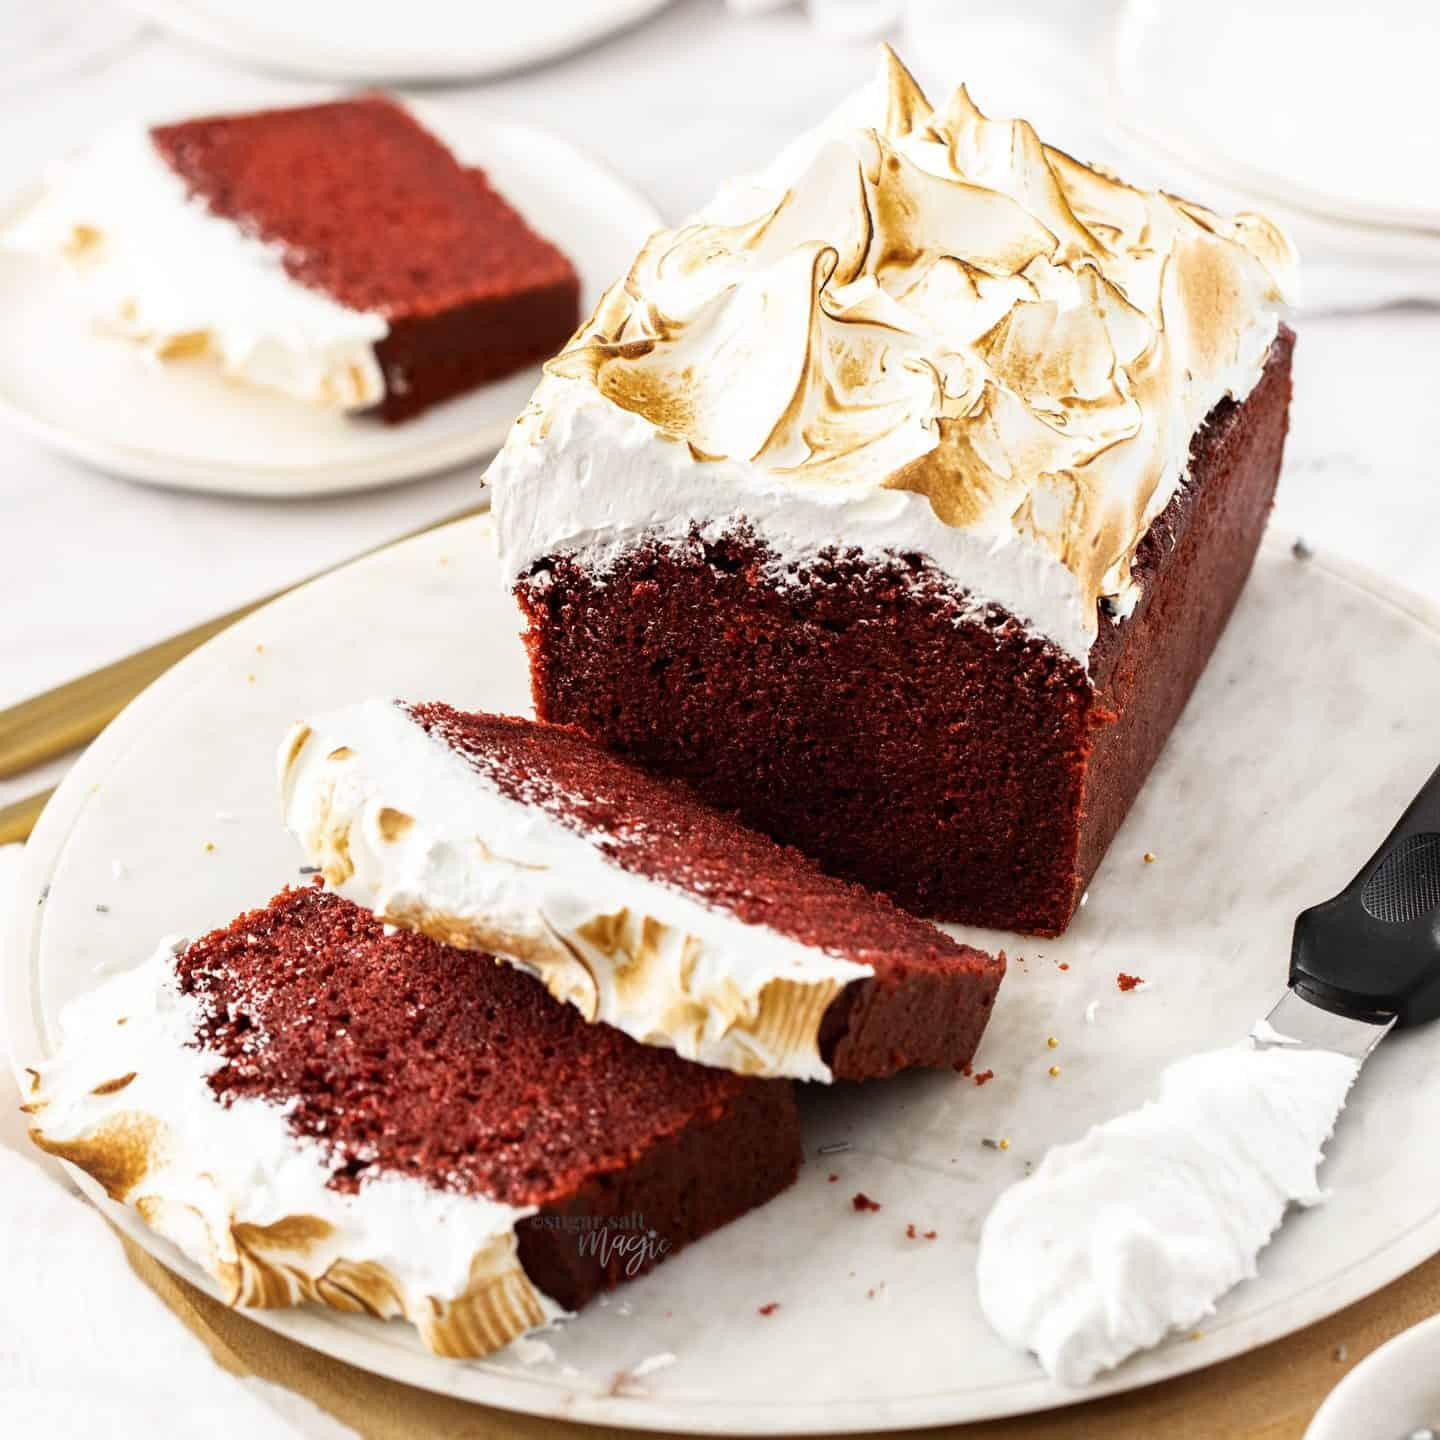 Red velvet cake on a white platter with two slices cut from it.